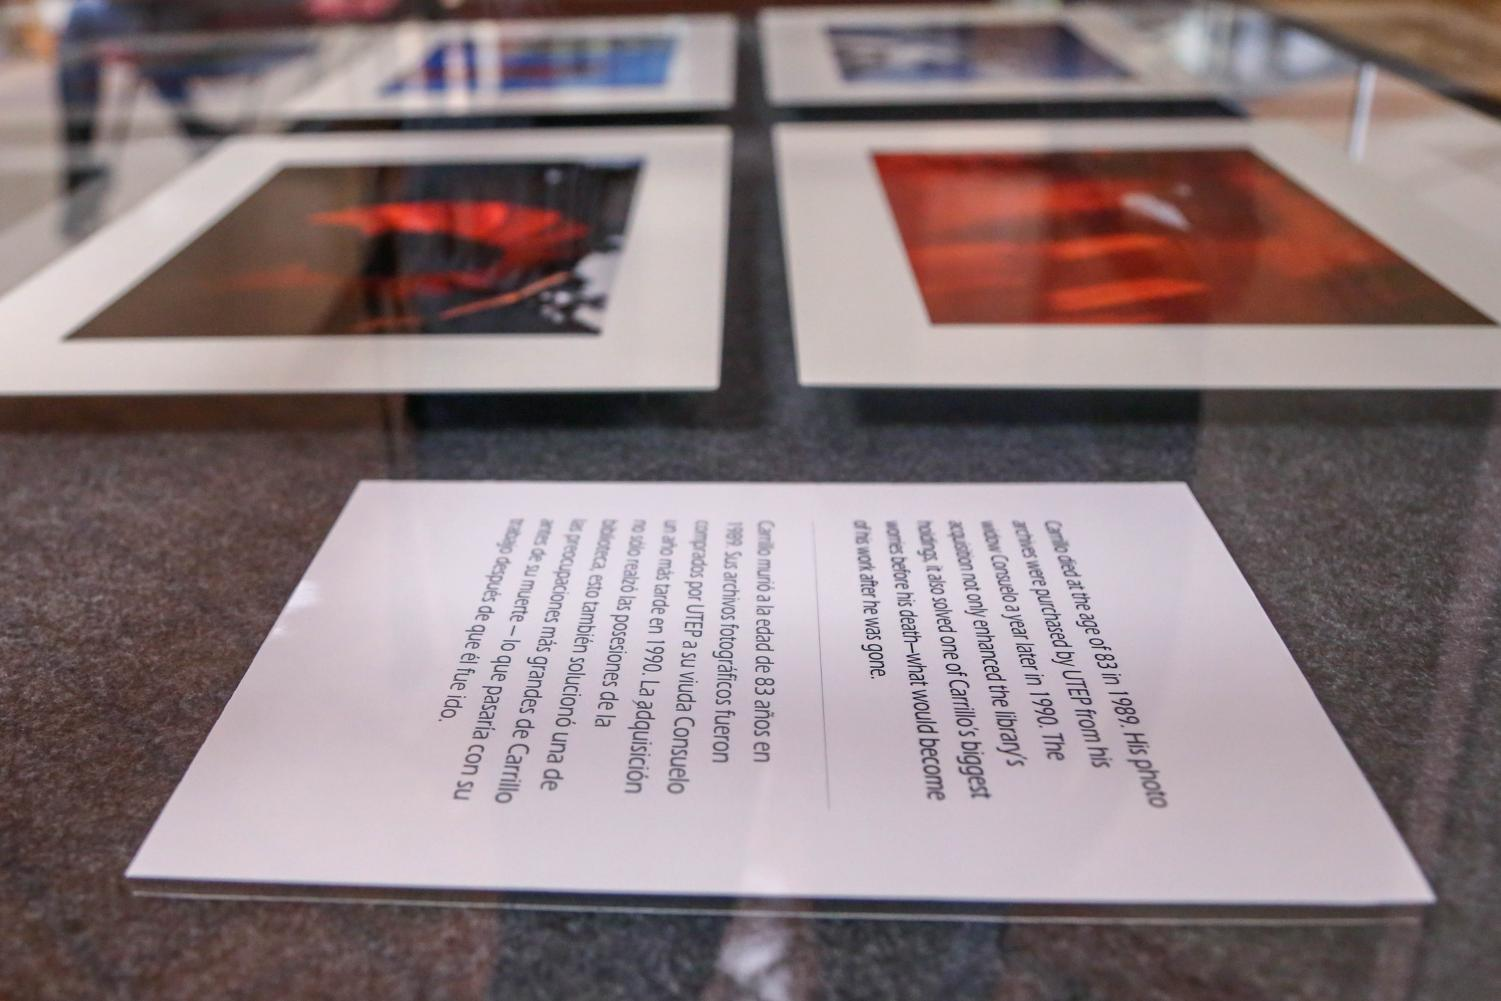 The+photographs+were+printed+on++on+metal+sheets+to+keep+the+clarity+in+the+photographs.+